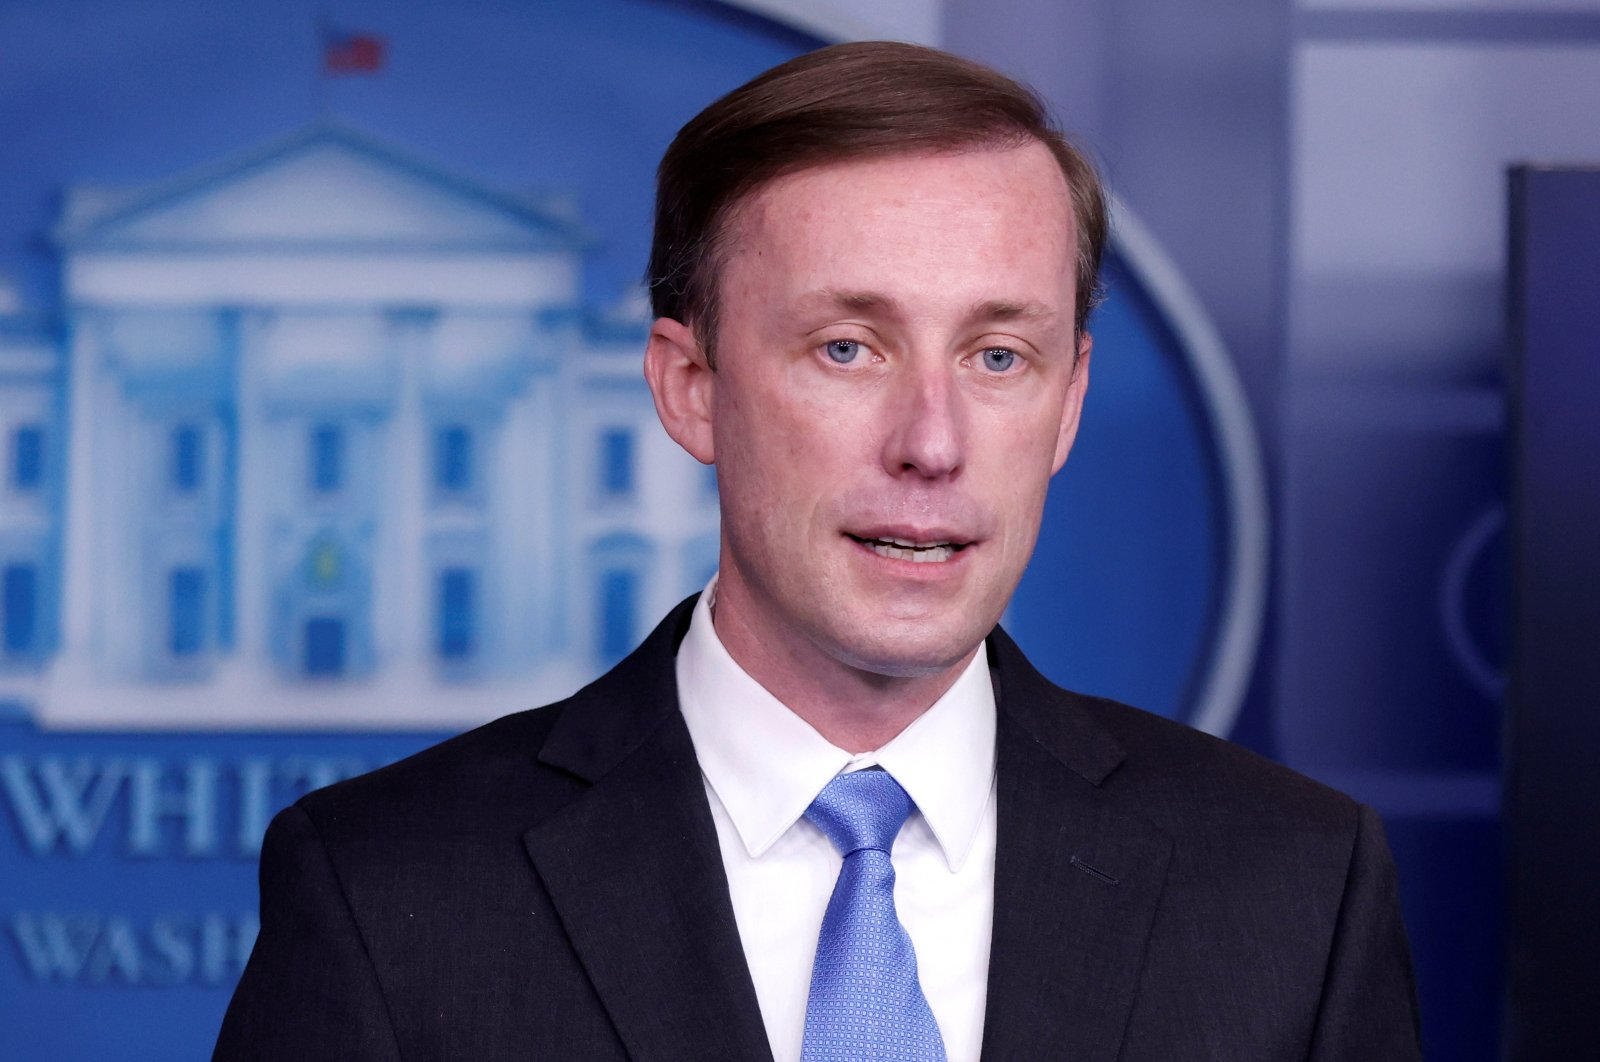 White House National Security Advisor Jake Sullivan delivers remarks during a press briefing inside the White House in Washington, U.S., Feb. 4, 2021. (Reuters Photo)